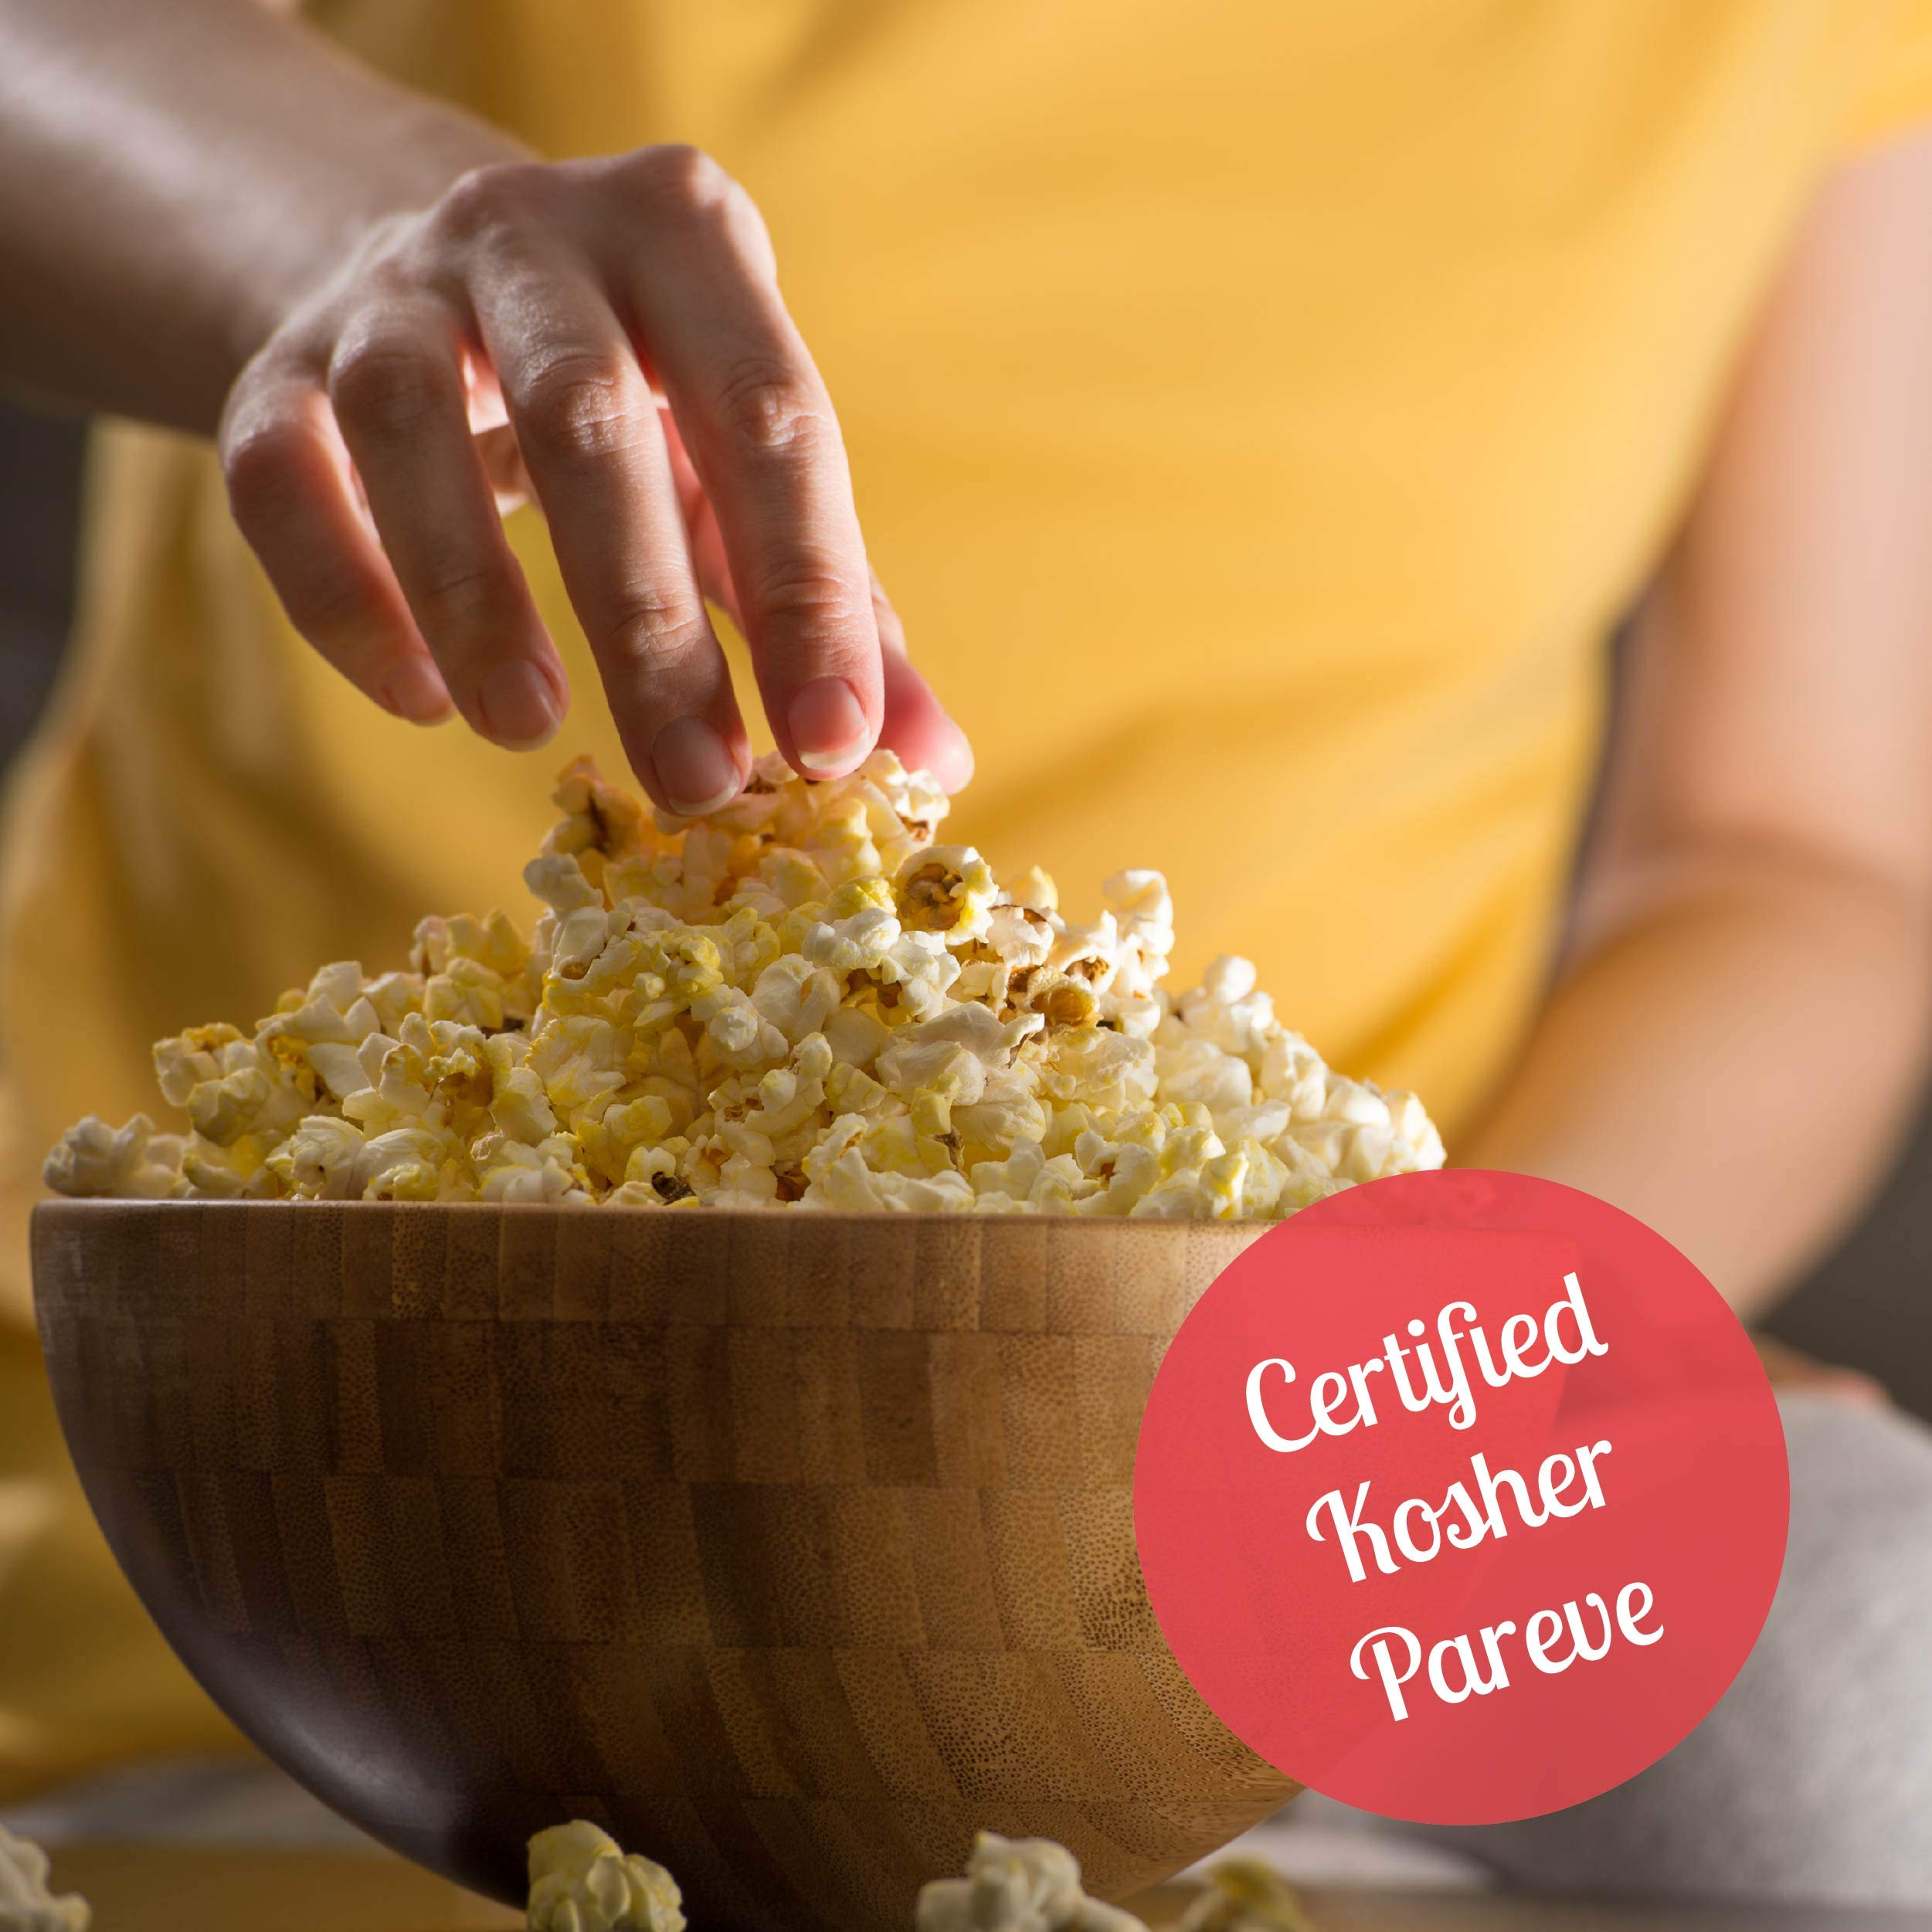 Wabash Valley Farms Real Theater Popcorn Popping Kit - Each Popping Corn Set Includes Gourmet Movie Theater Popcorn, Buttery Salt, and Popping Oil - Perfect for Movie Nights and More - 20 Pack by Wabash Valley Farms (Image #1)